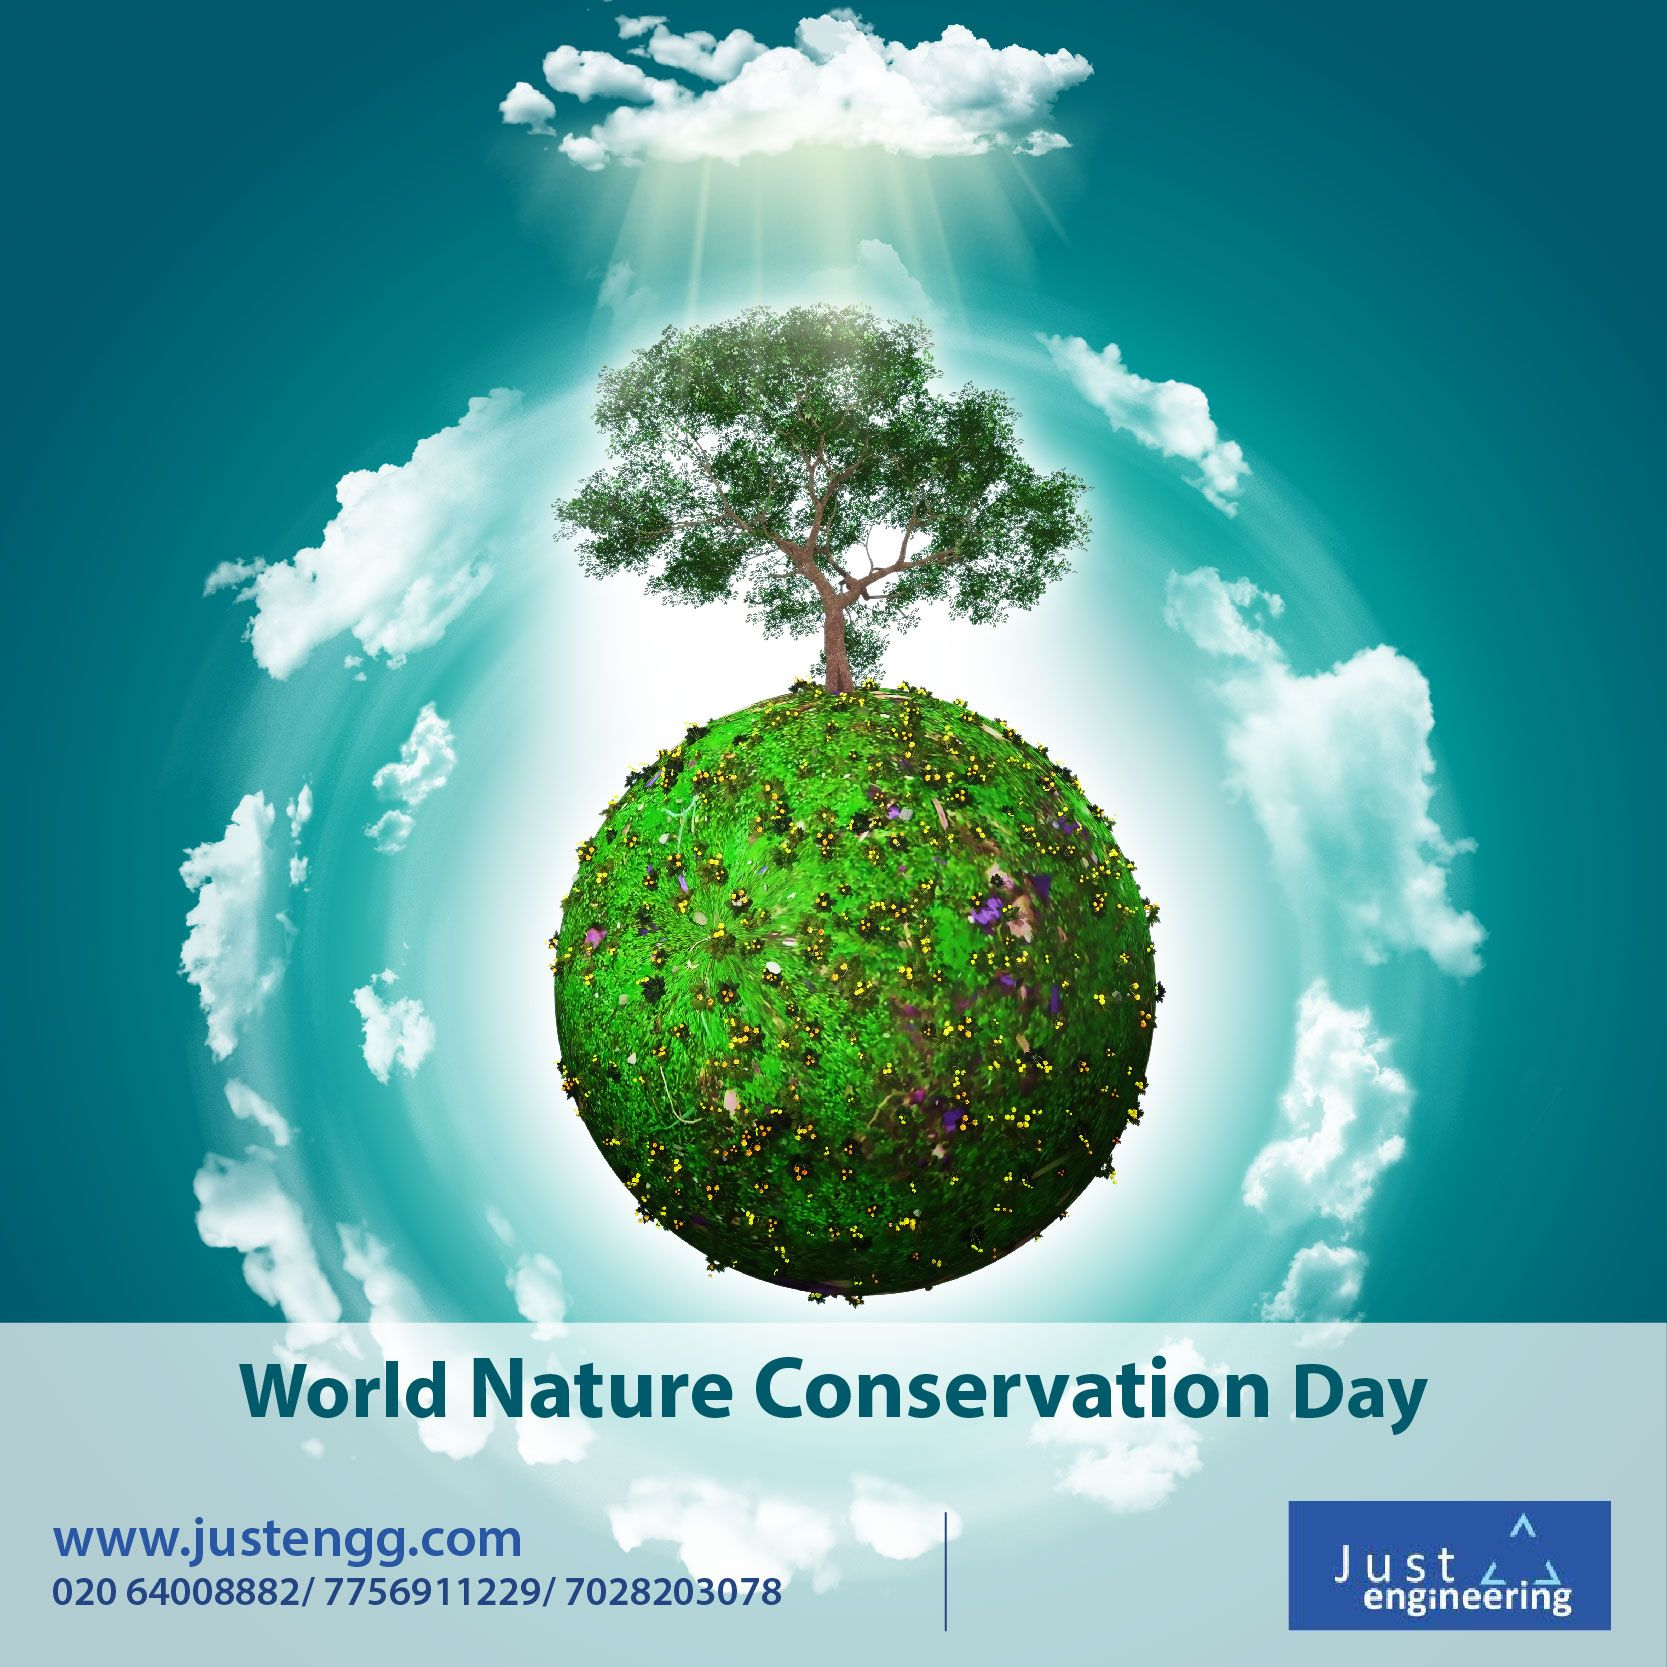 Go Green To Save Earth Grow Trees To Save Us Let Us Make Our Earth Smile Always World Nature Conservat World Environment Day Save Nature Environment Day